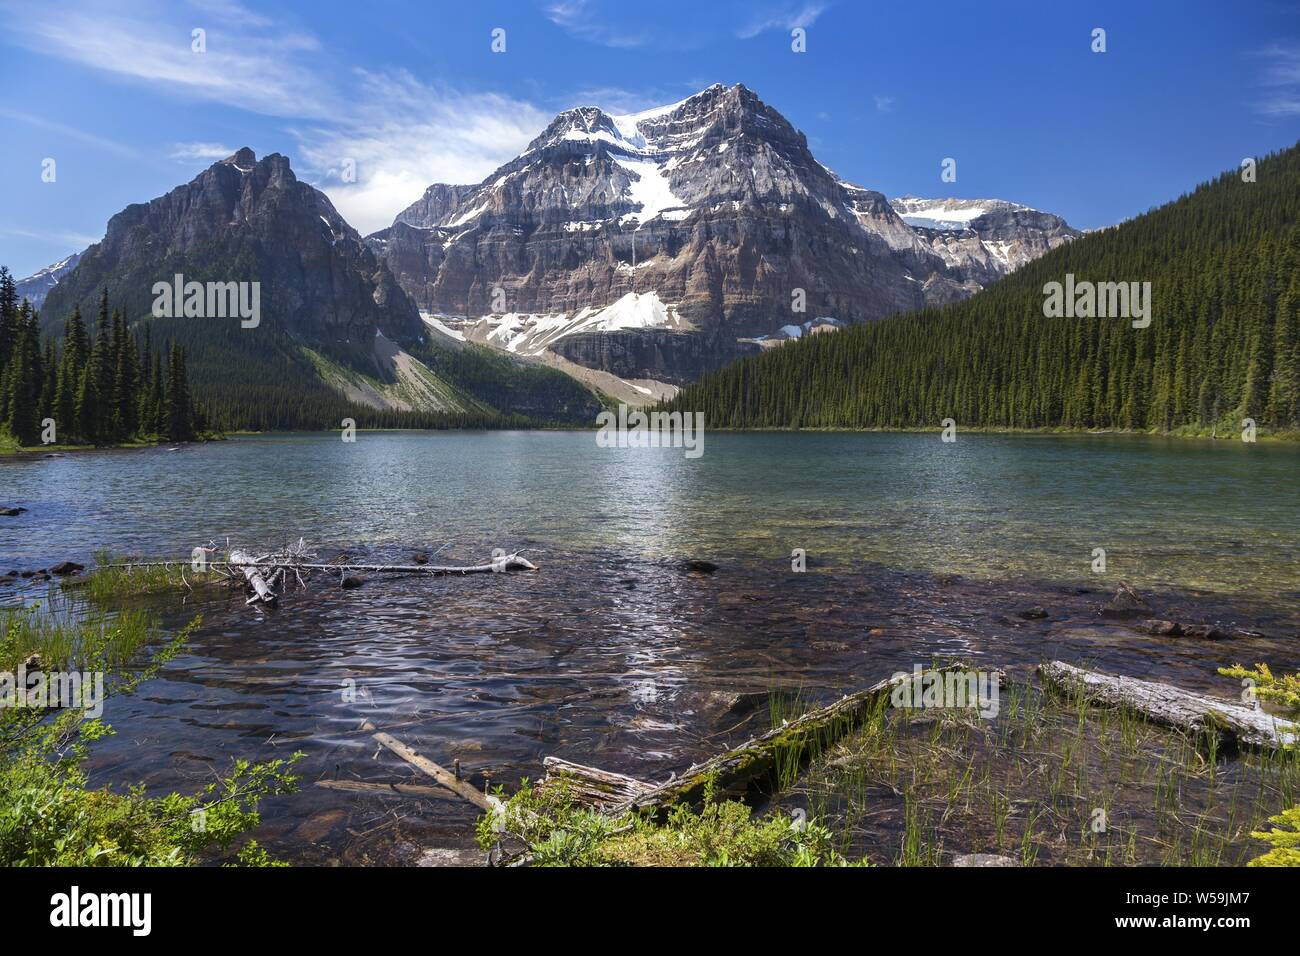 scenic-landscape-view-of-shadow-lake-and